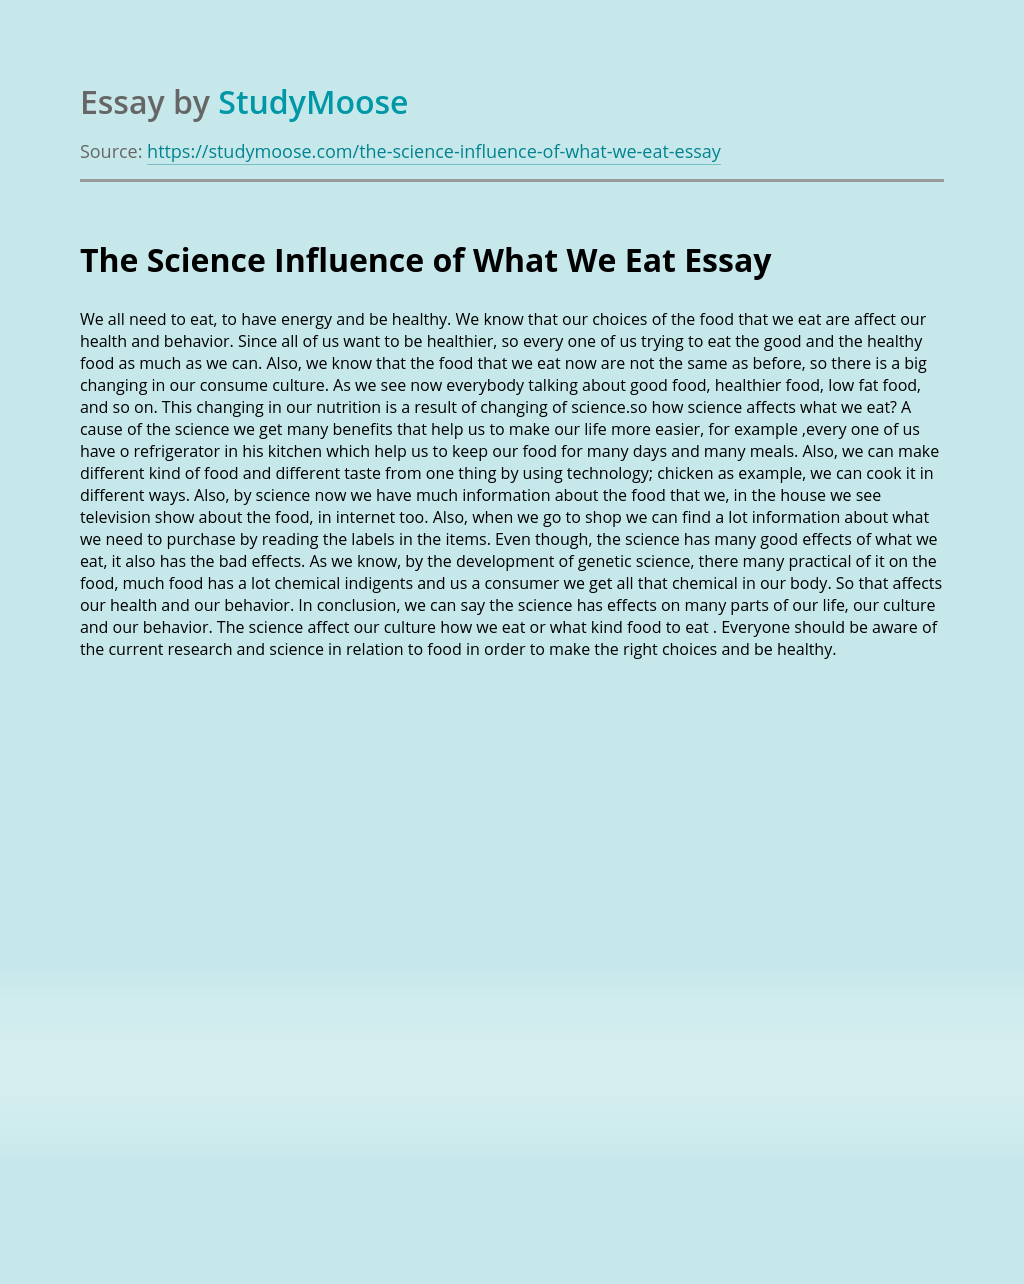 The Science Influence of What We Eat